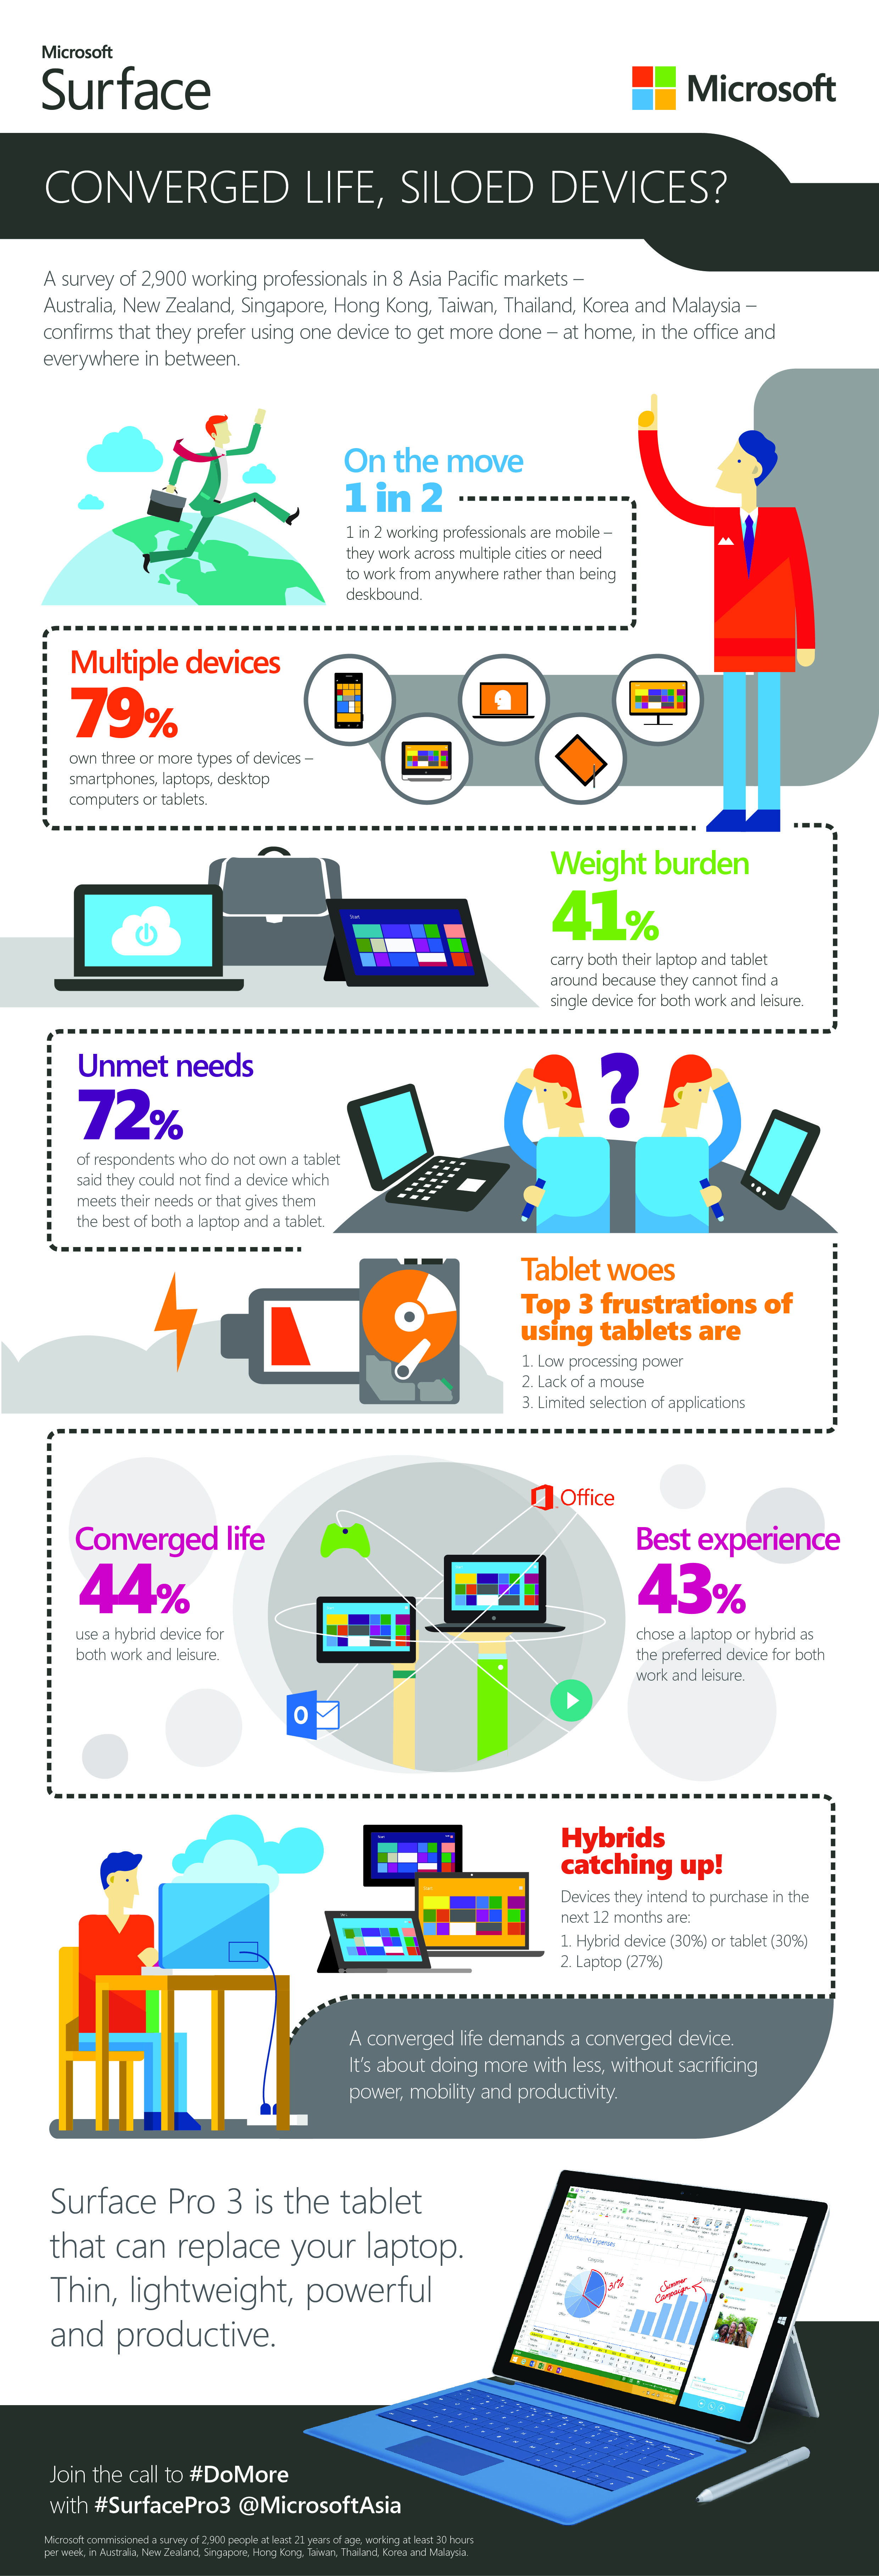 APAC SurfacePro3 infographic FINAL 1_editing_legal